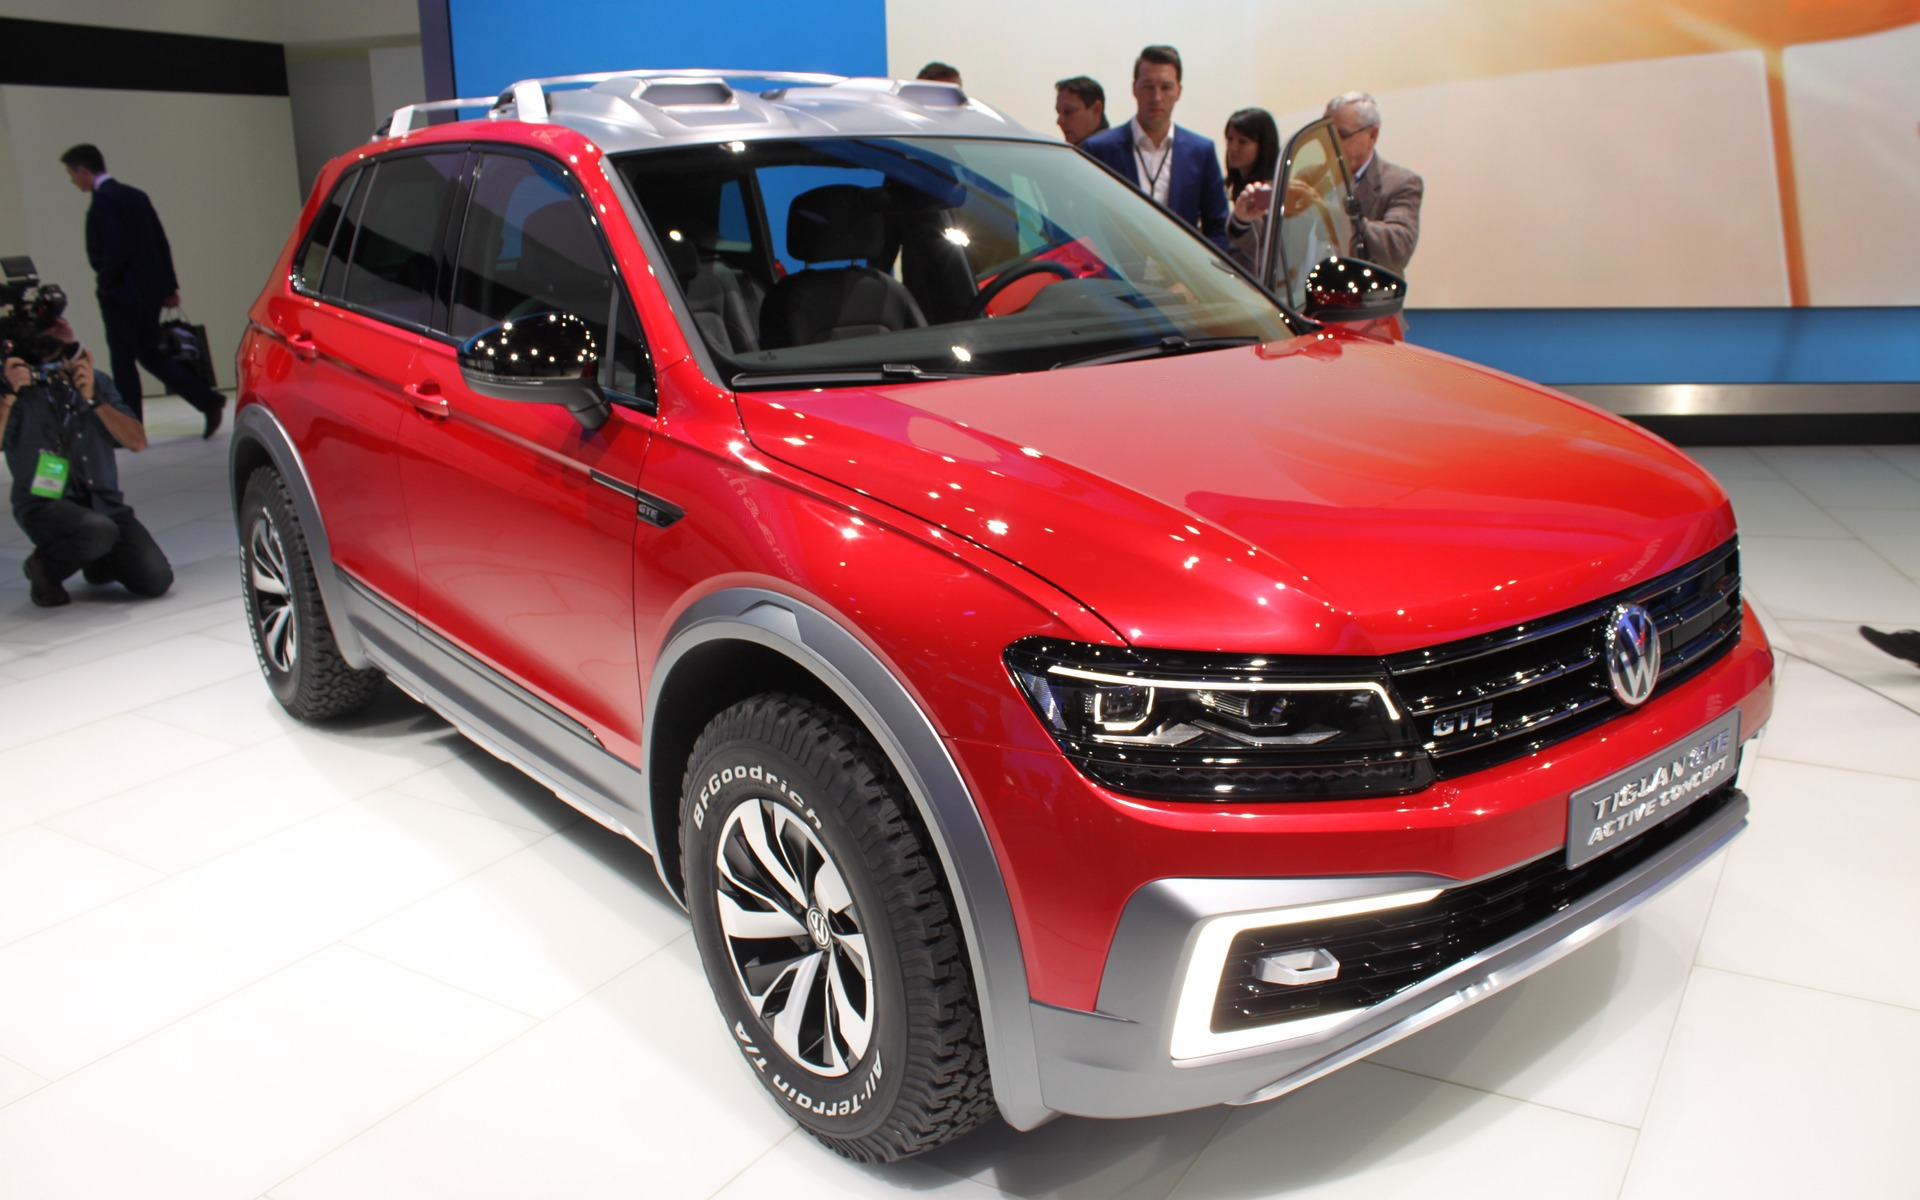 volkswagen tiguan gte active concept hybrids are moving in at vw the car guide. Black Bedroom Furniture Sets. Home Design Ideas